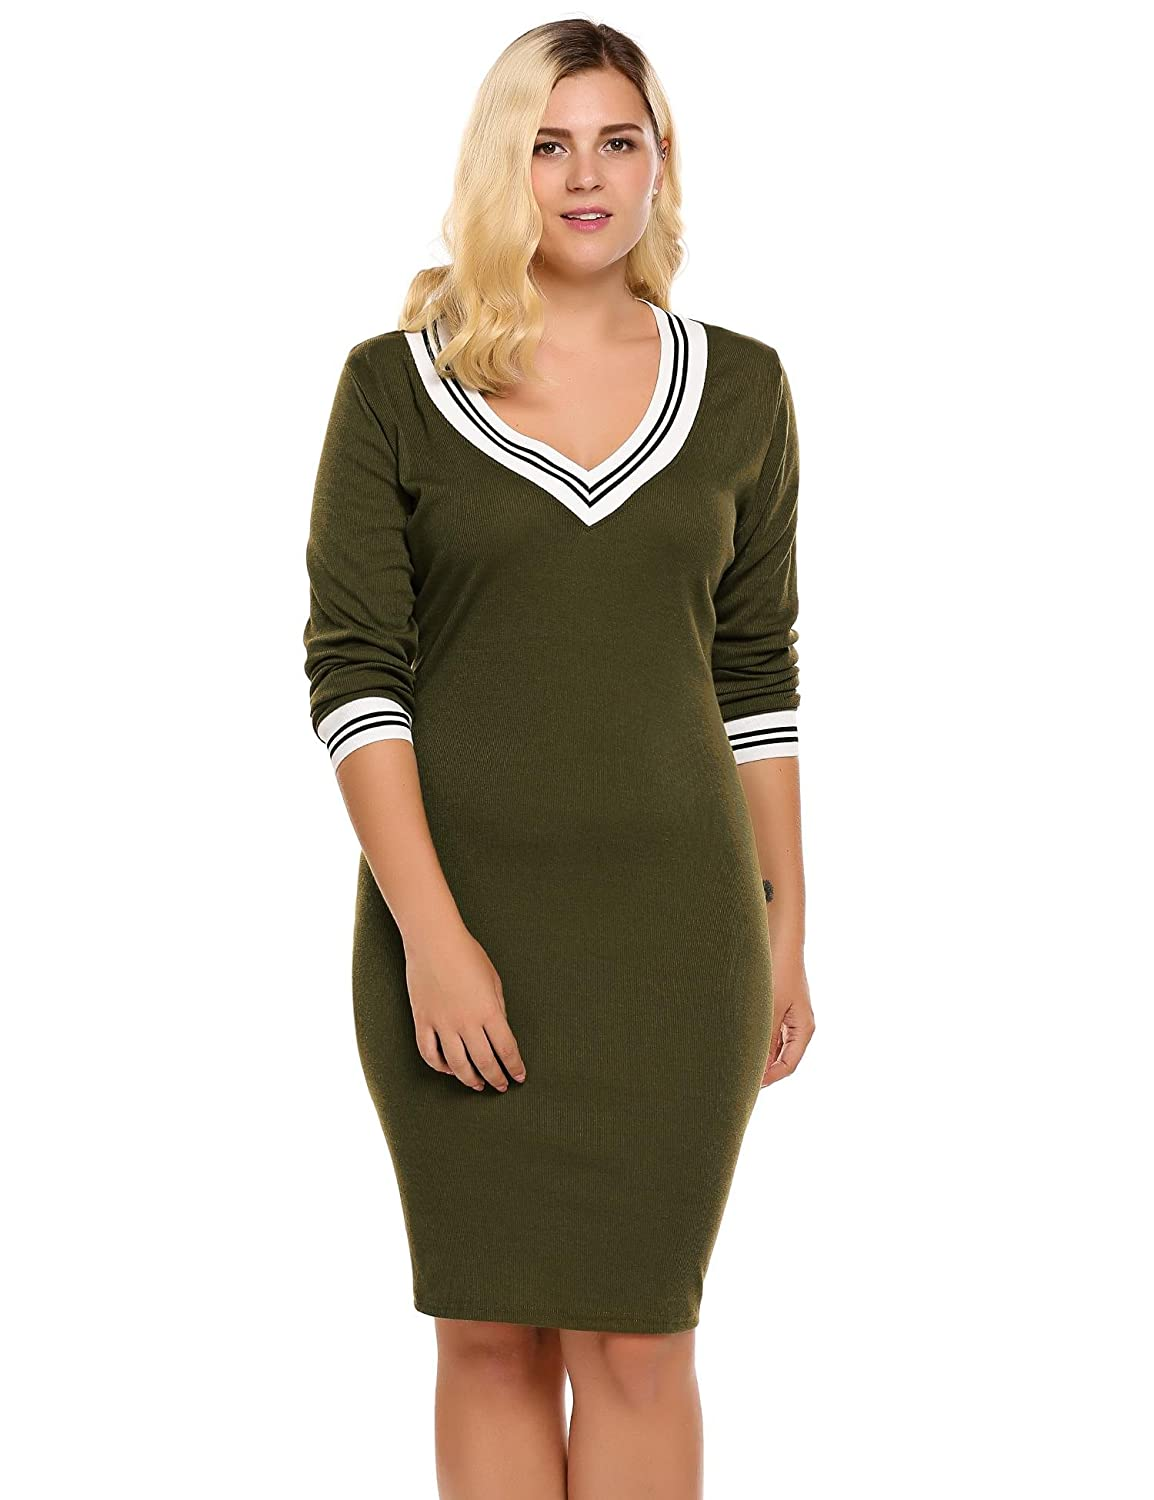 IN VOLAND Involand Women Plus Size Knit Sweater Dress Basic Slim Fit Long  Sleeve V Neck Stretchable Dress (16W~24W) at Amazon Women s Clothing store  fab623f4c